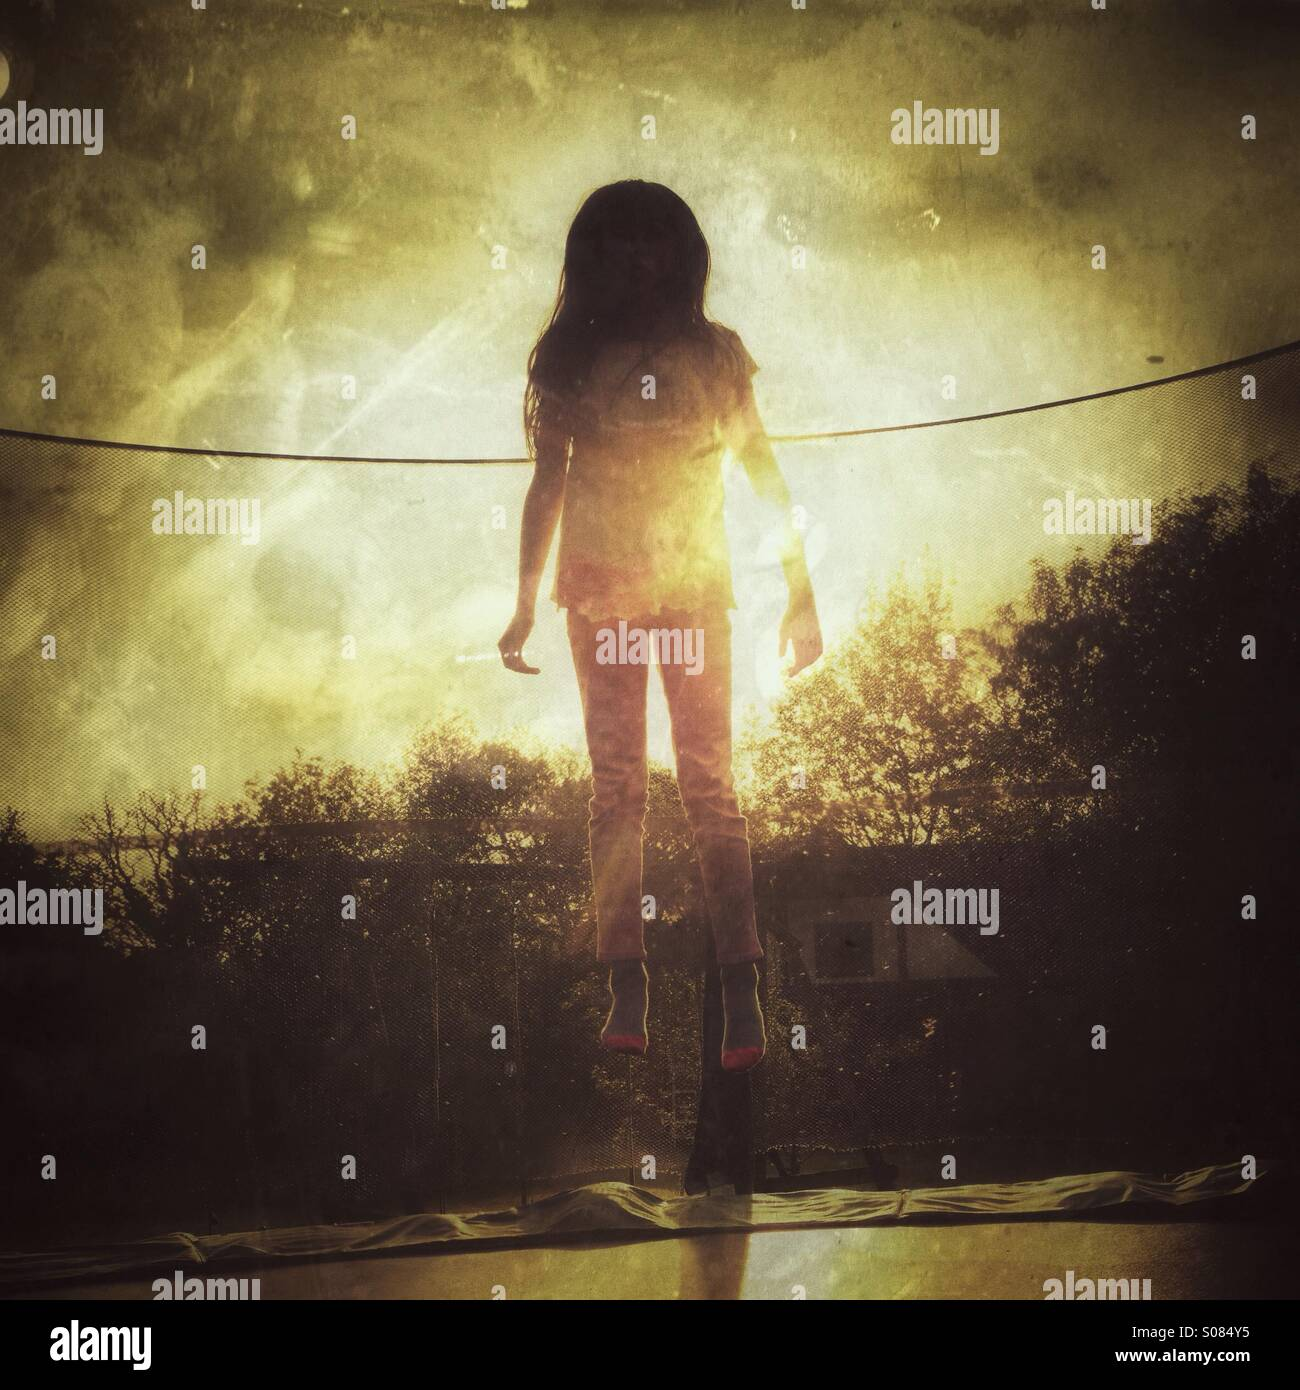 Angel - Young girl bouncing on trampoline - Stock Image